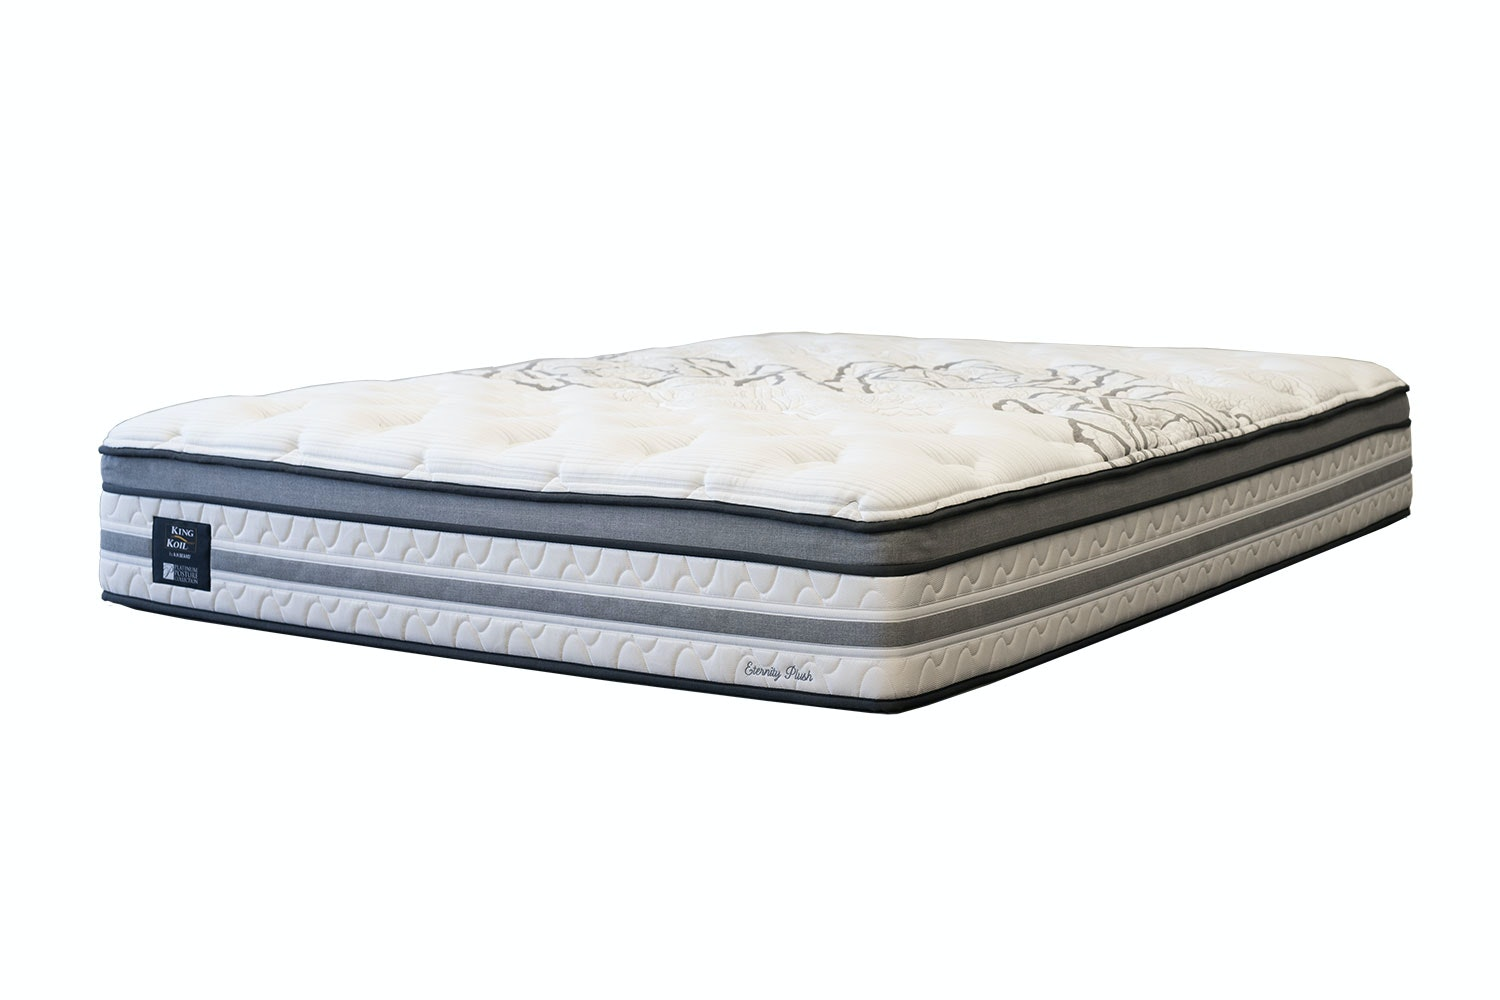 Eternity Plush Californian King Mattress by King Koil